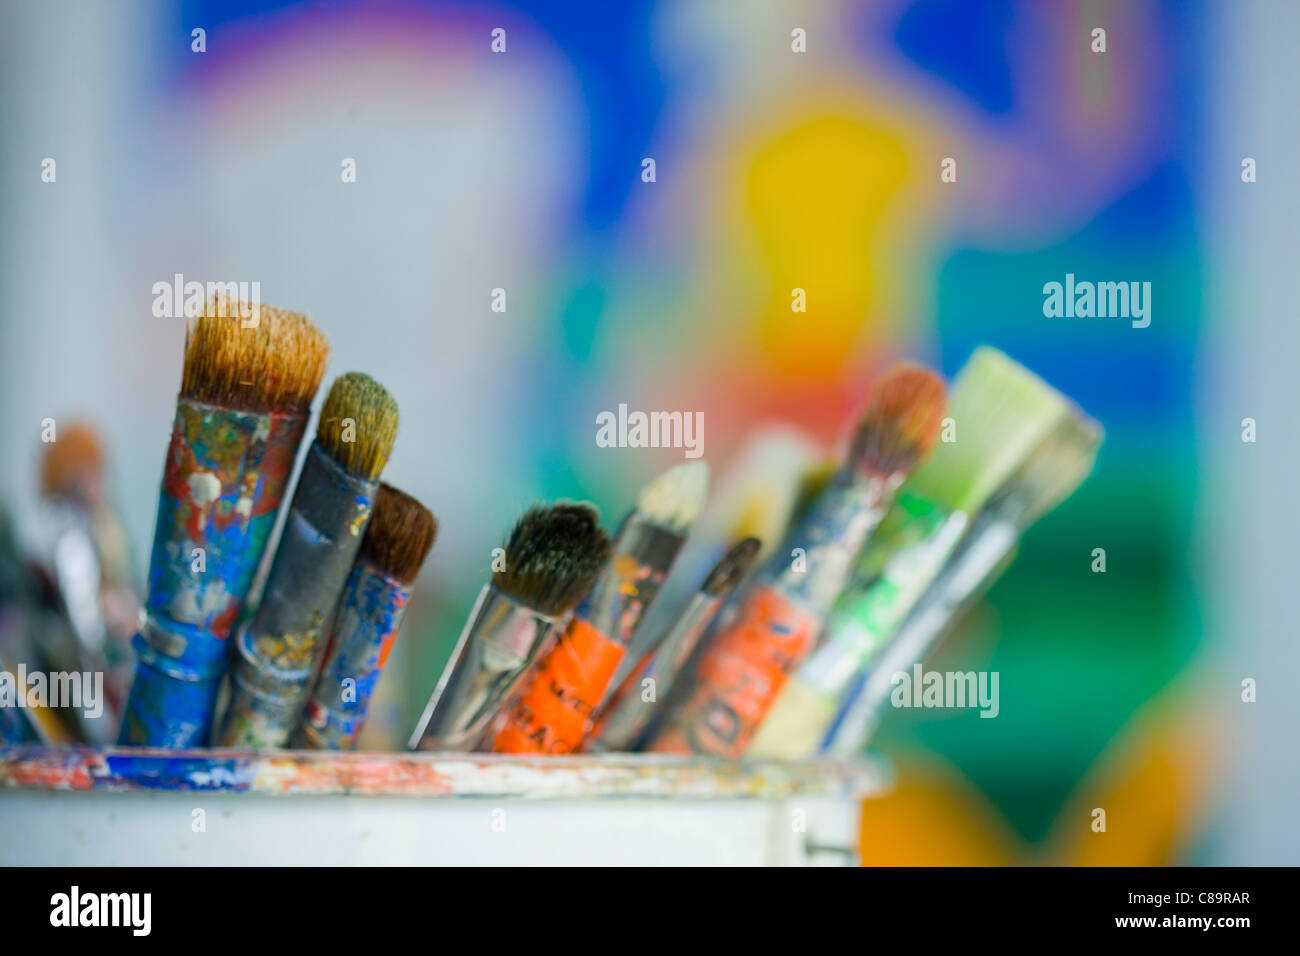 Close up of dirty paint brushes - Stock Image